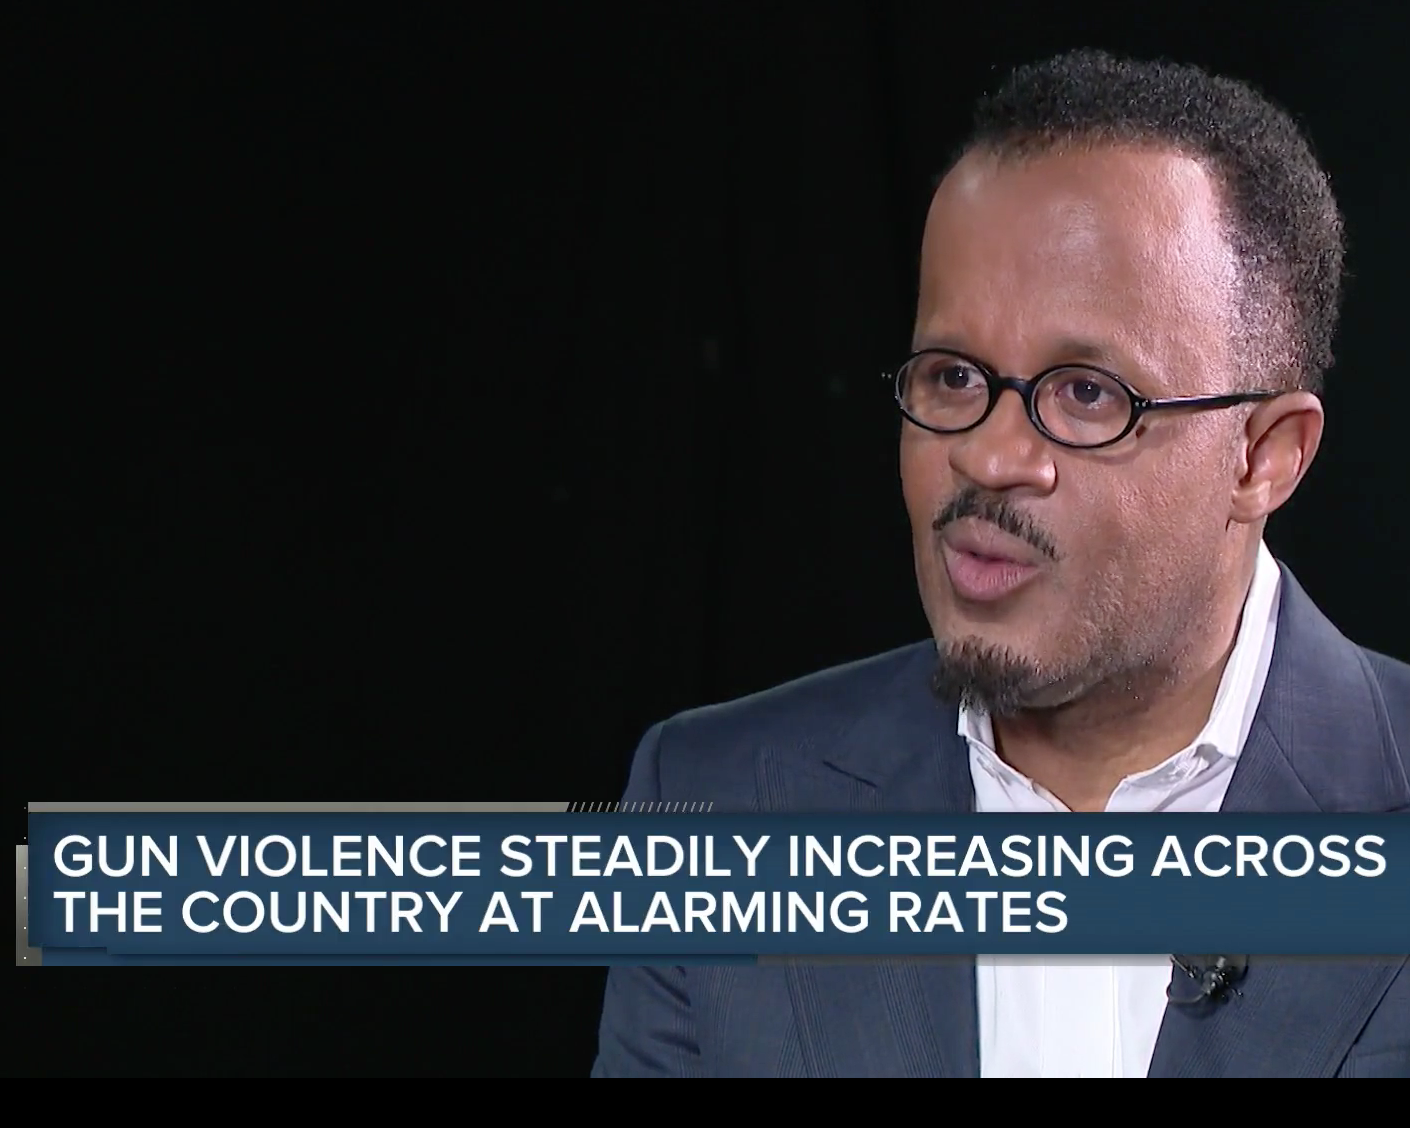 NewsNation interviews Dexter Voisin about the increasing violence in the US